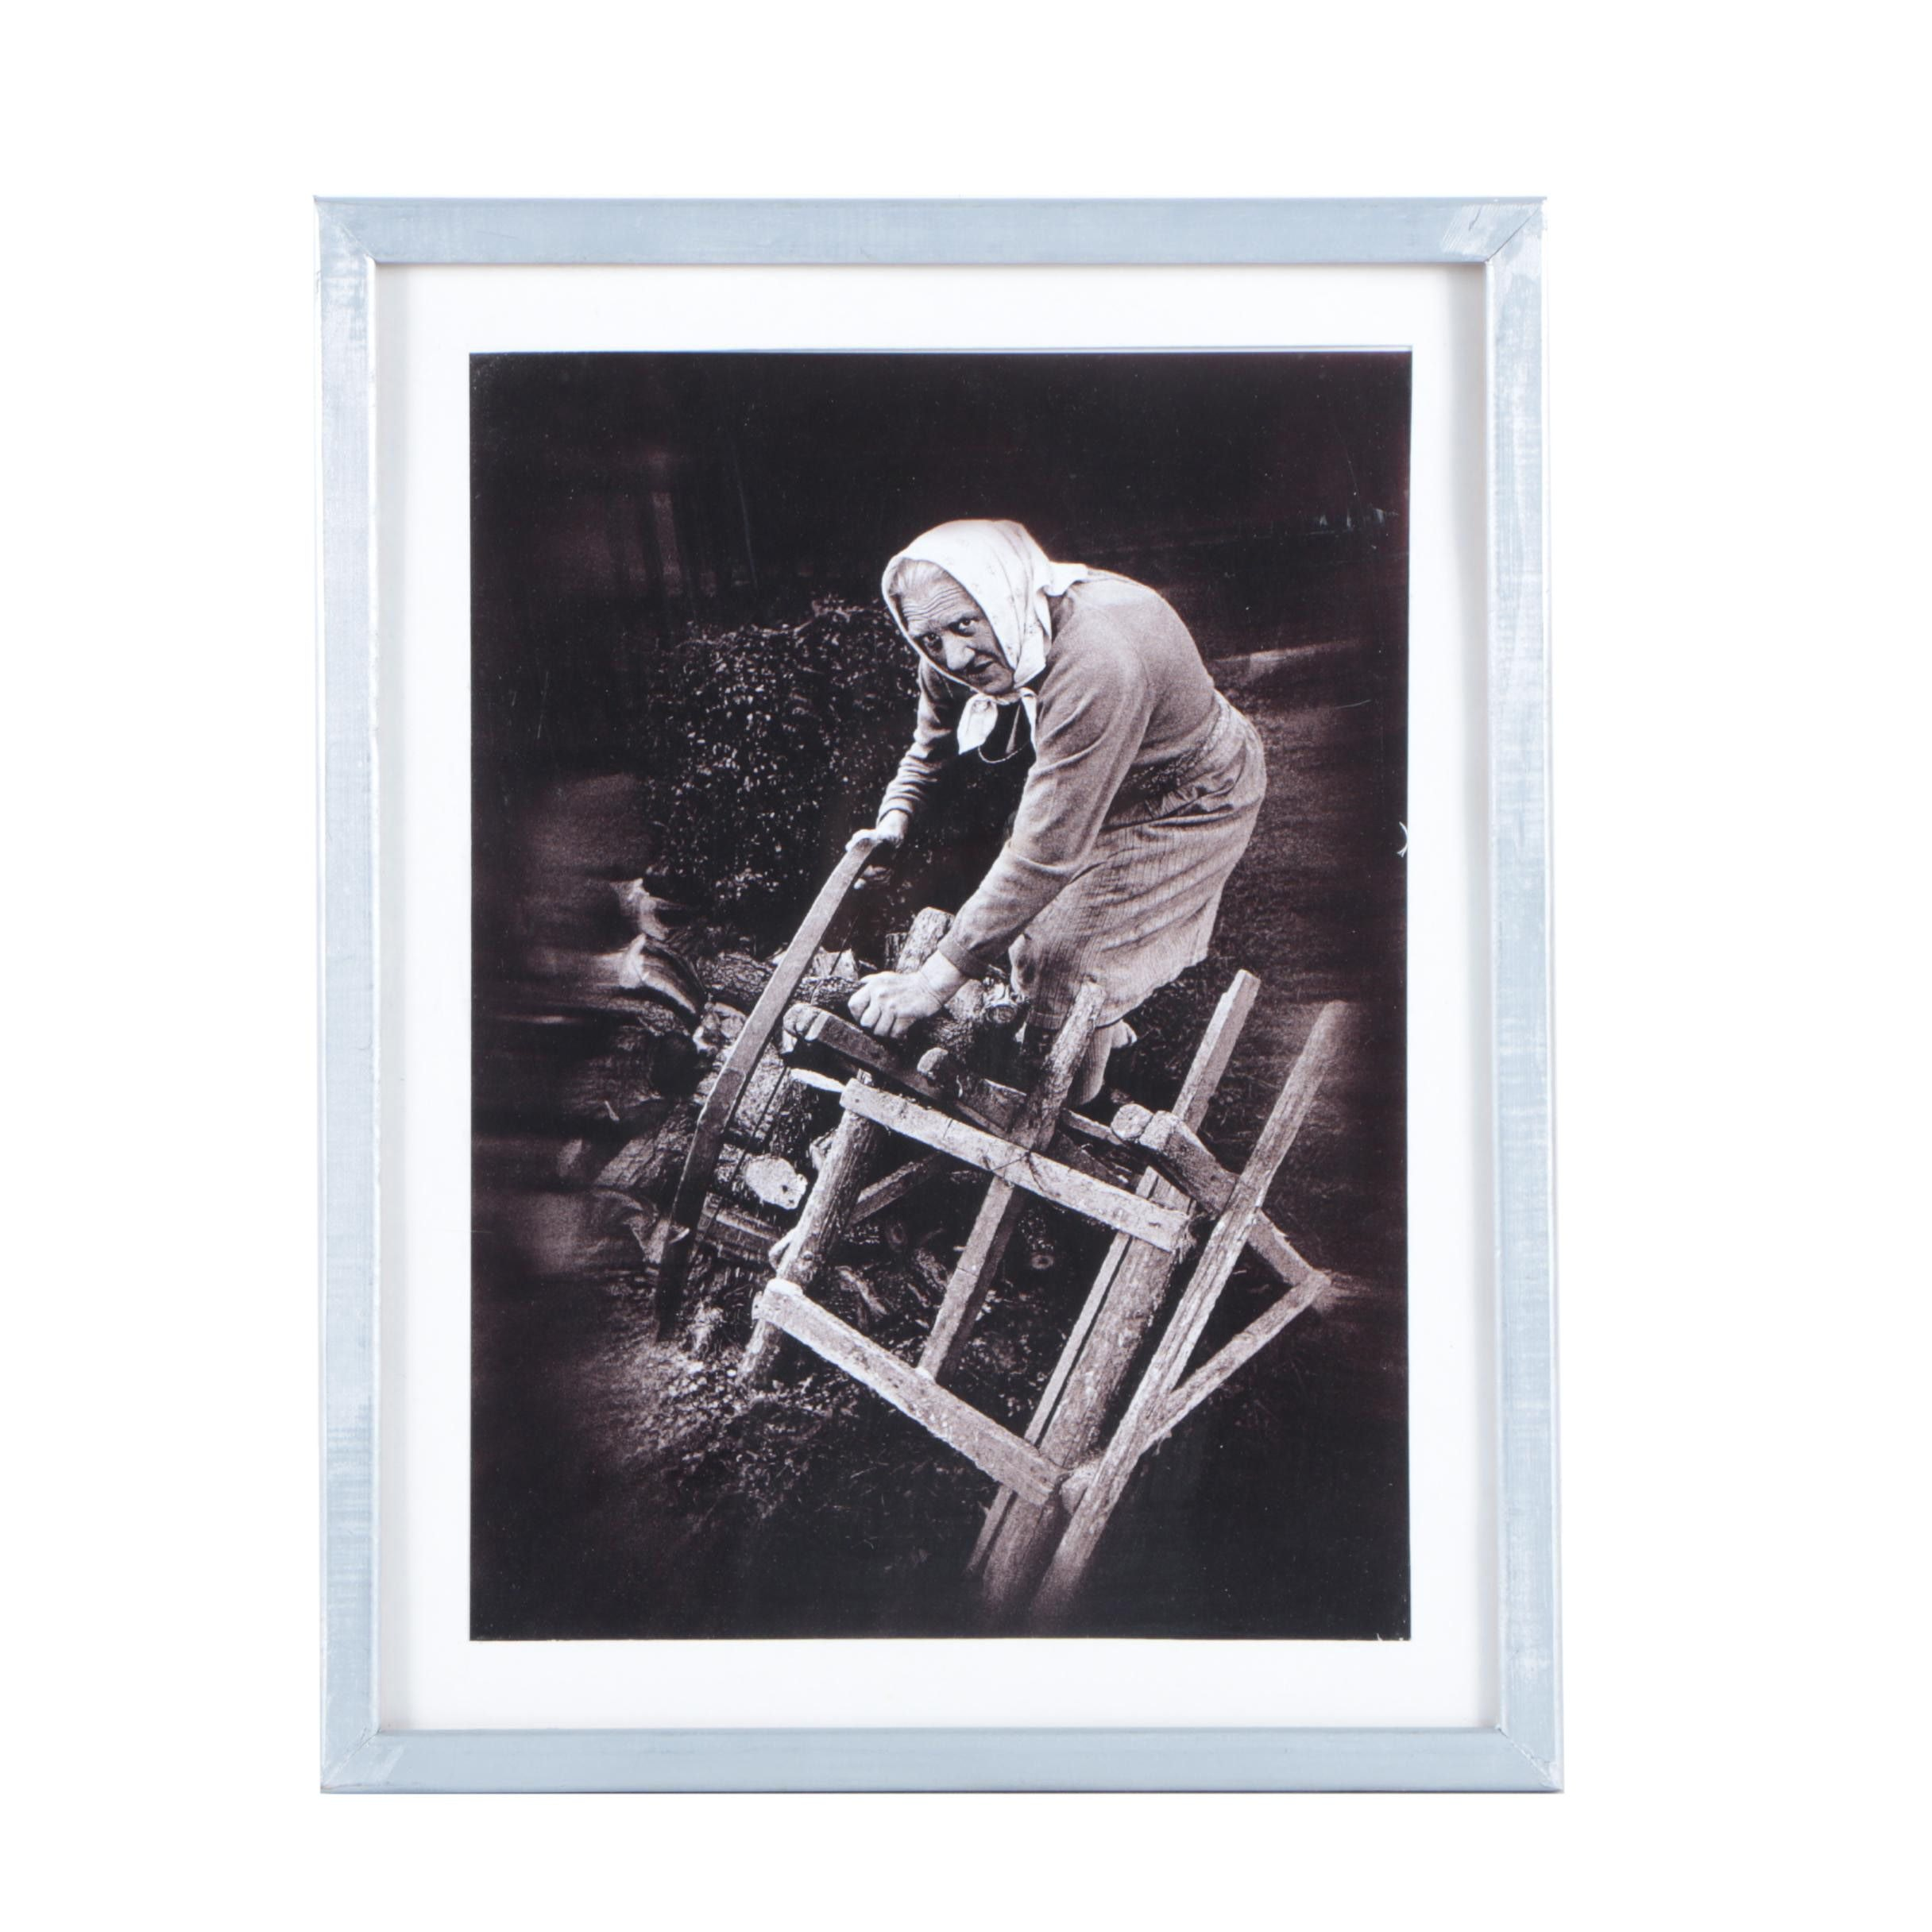 Digital Black and White Photograph on Paper of a Woman Sawing Wood